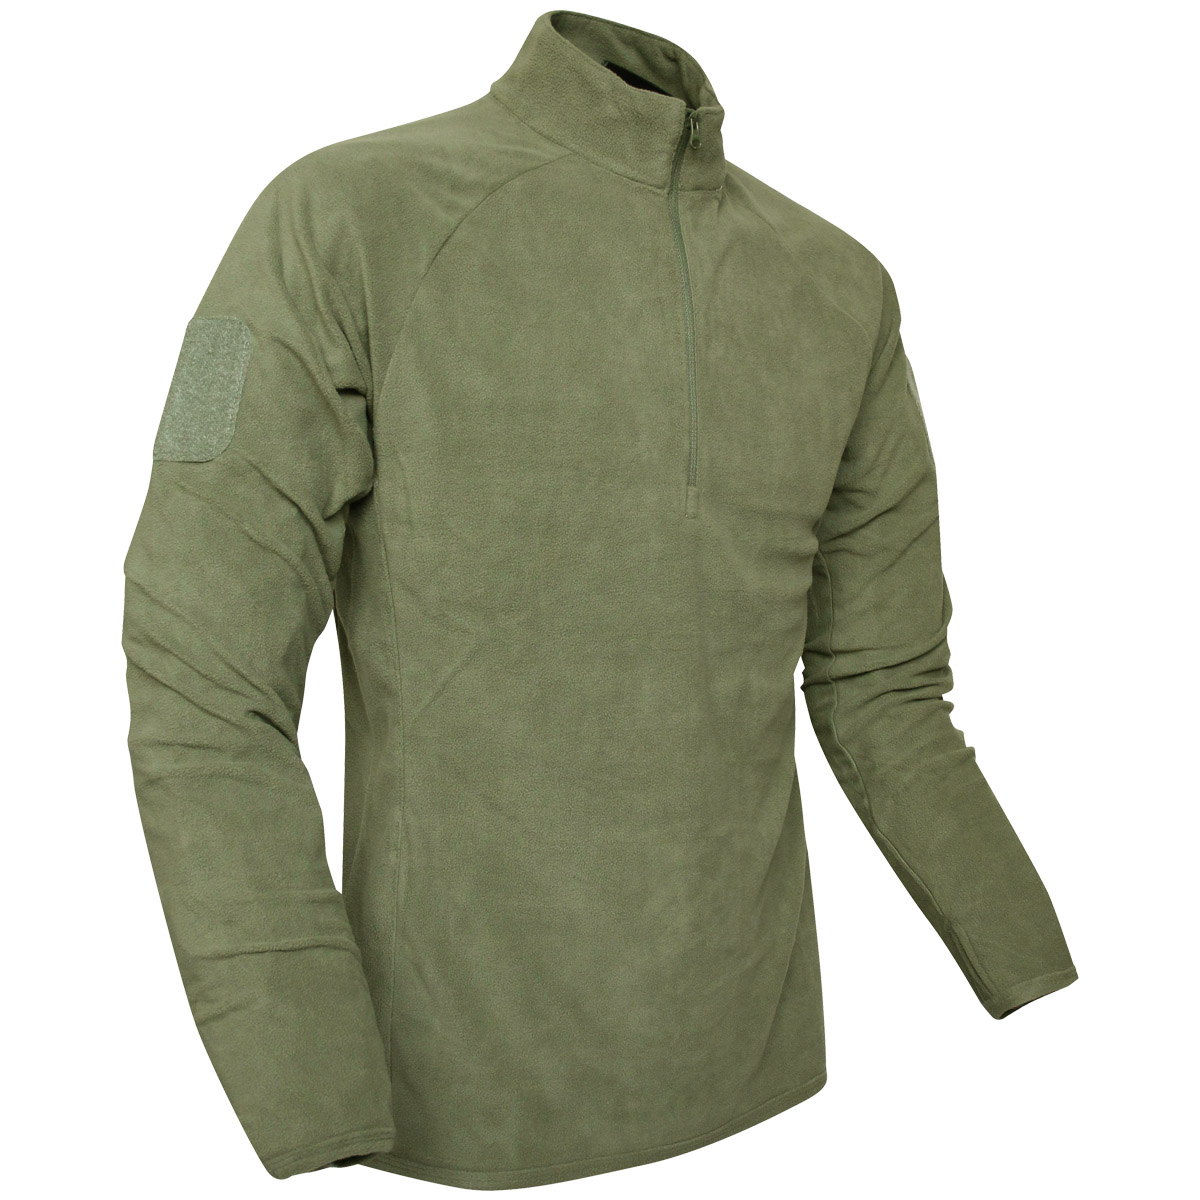 Viper Tactical Army Cadet Mens Elite Mid-Layer Fleece Camping Hiking Olive Green